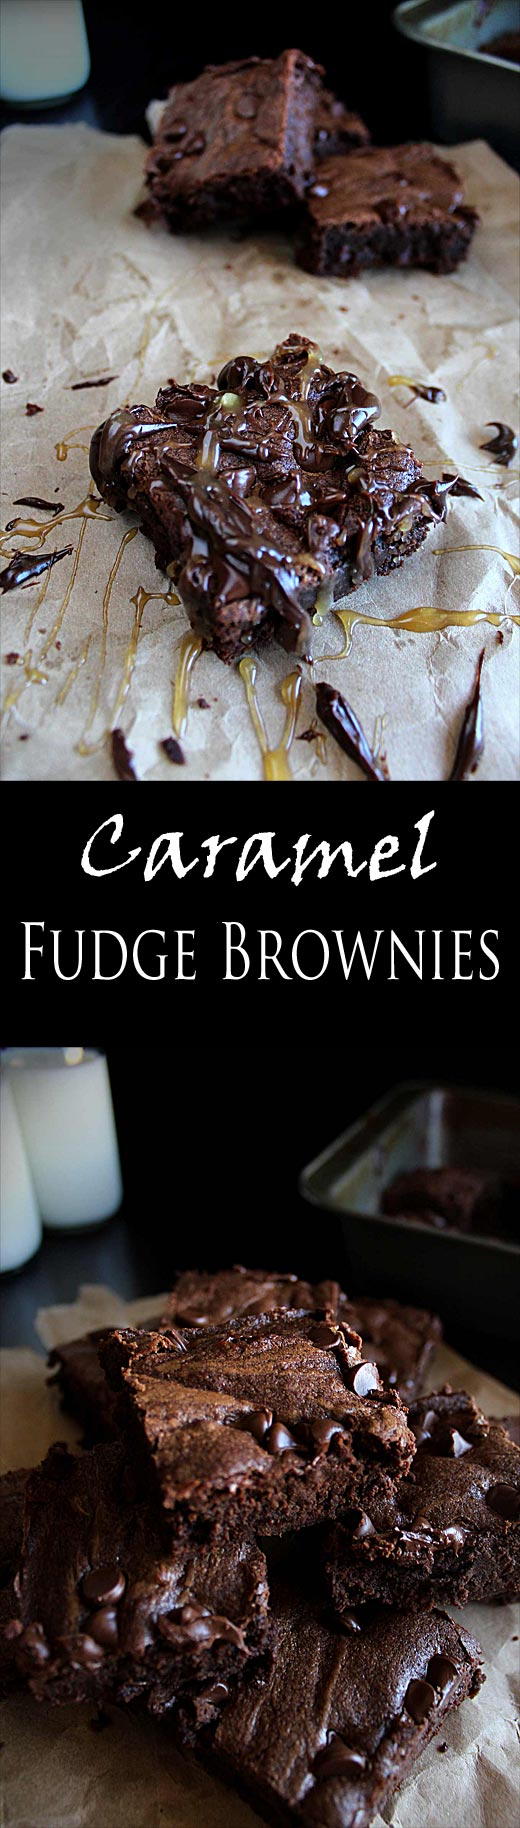 Chocolate Chunk Caramel Fudge Brownies | Chocolate Brownies | Homemade Hot Fudge | Caramel Sauce | Homemade Brownie Recipe